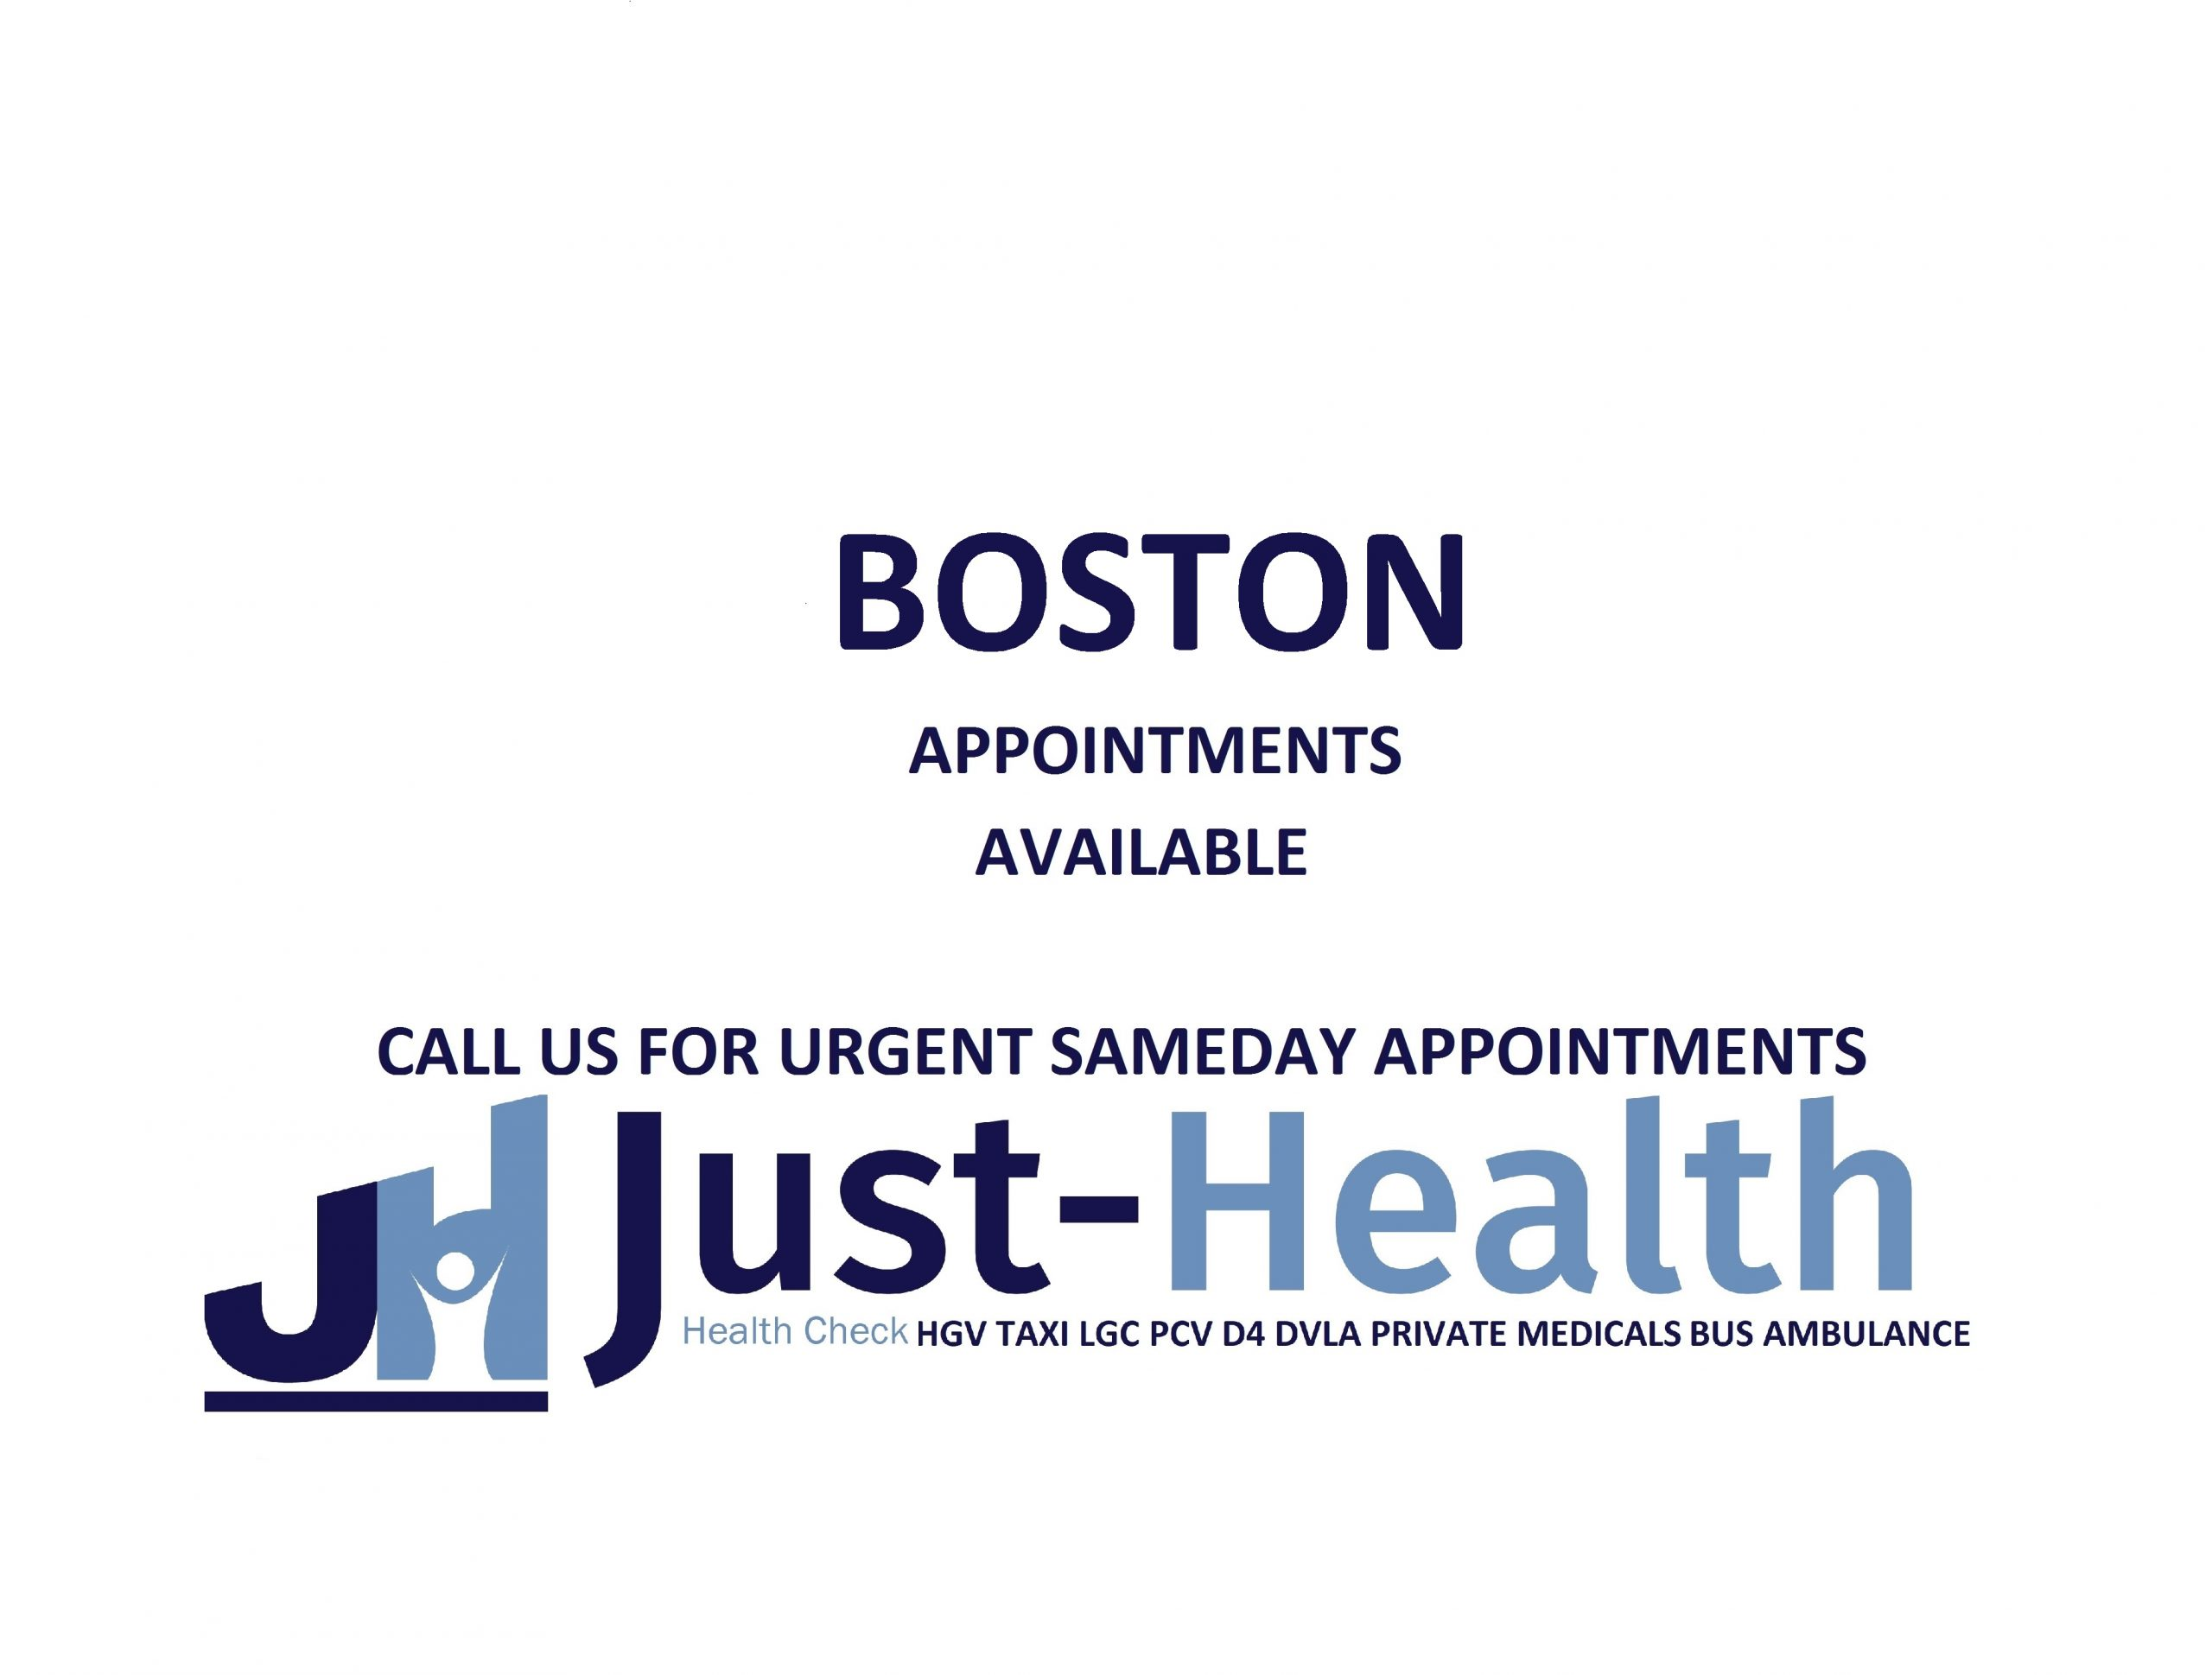 d4 PSV LGV Taxi Pcv HGV medical just health clinic boston